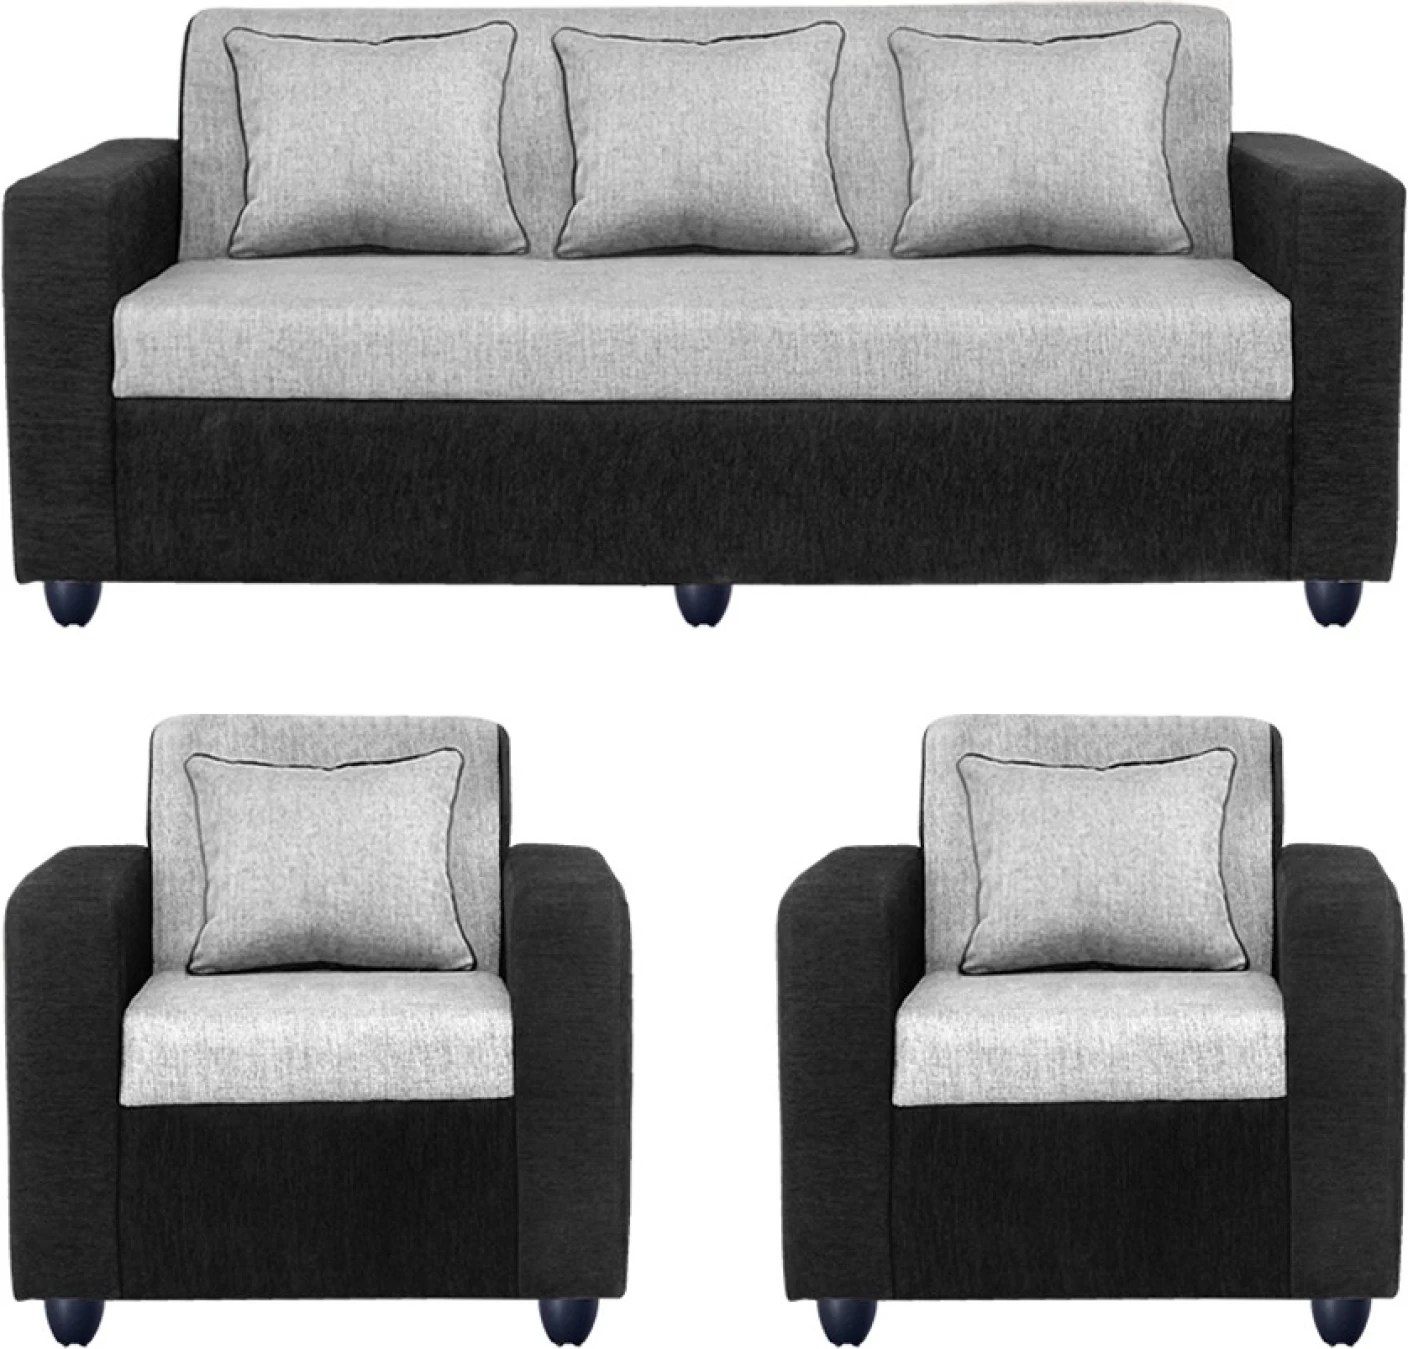 R K Sofa Set Rajkot Gujarat Bharat Lifestyle Tulip Fabric 3 43 1 43 1 Black Sofa Set